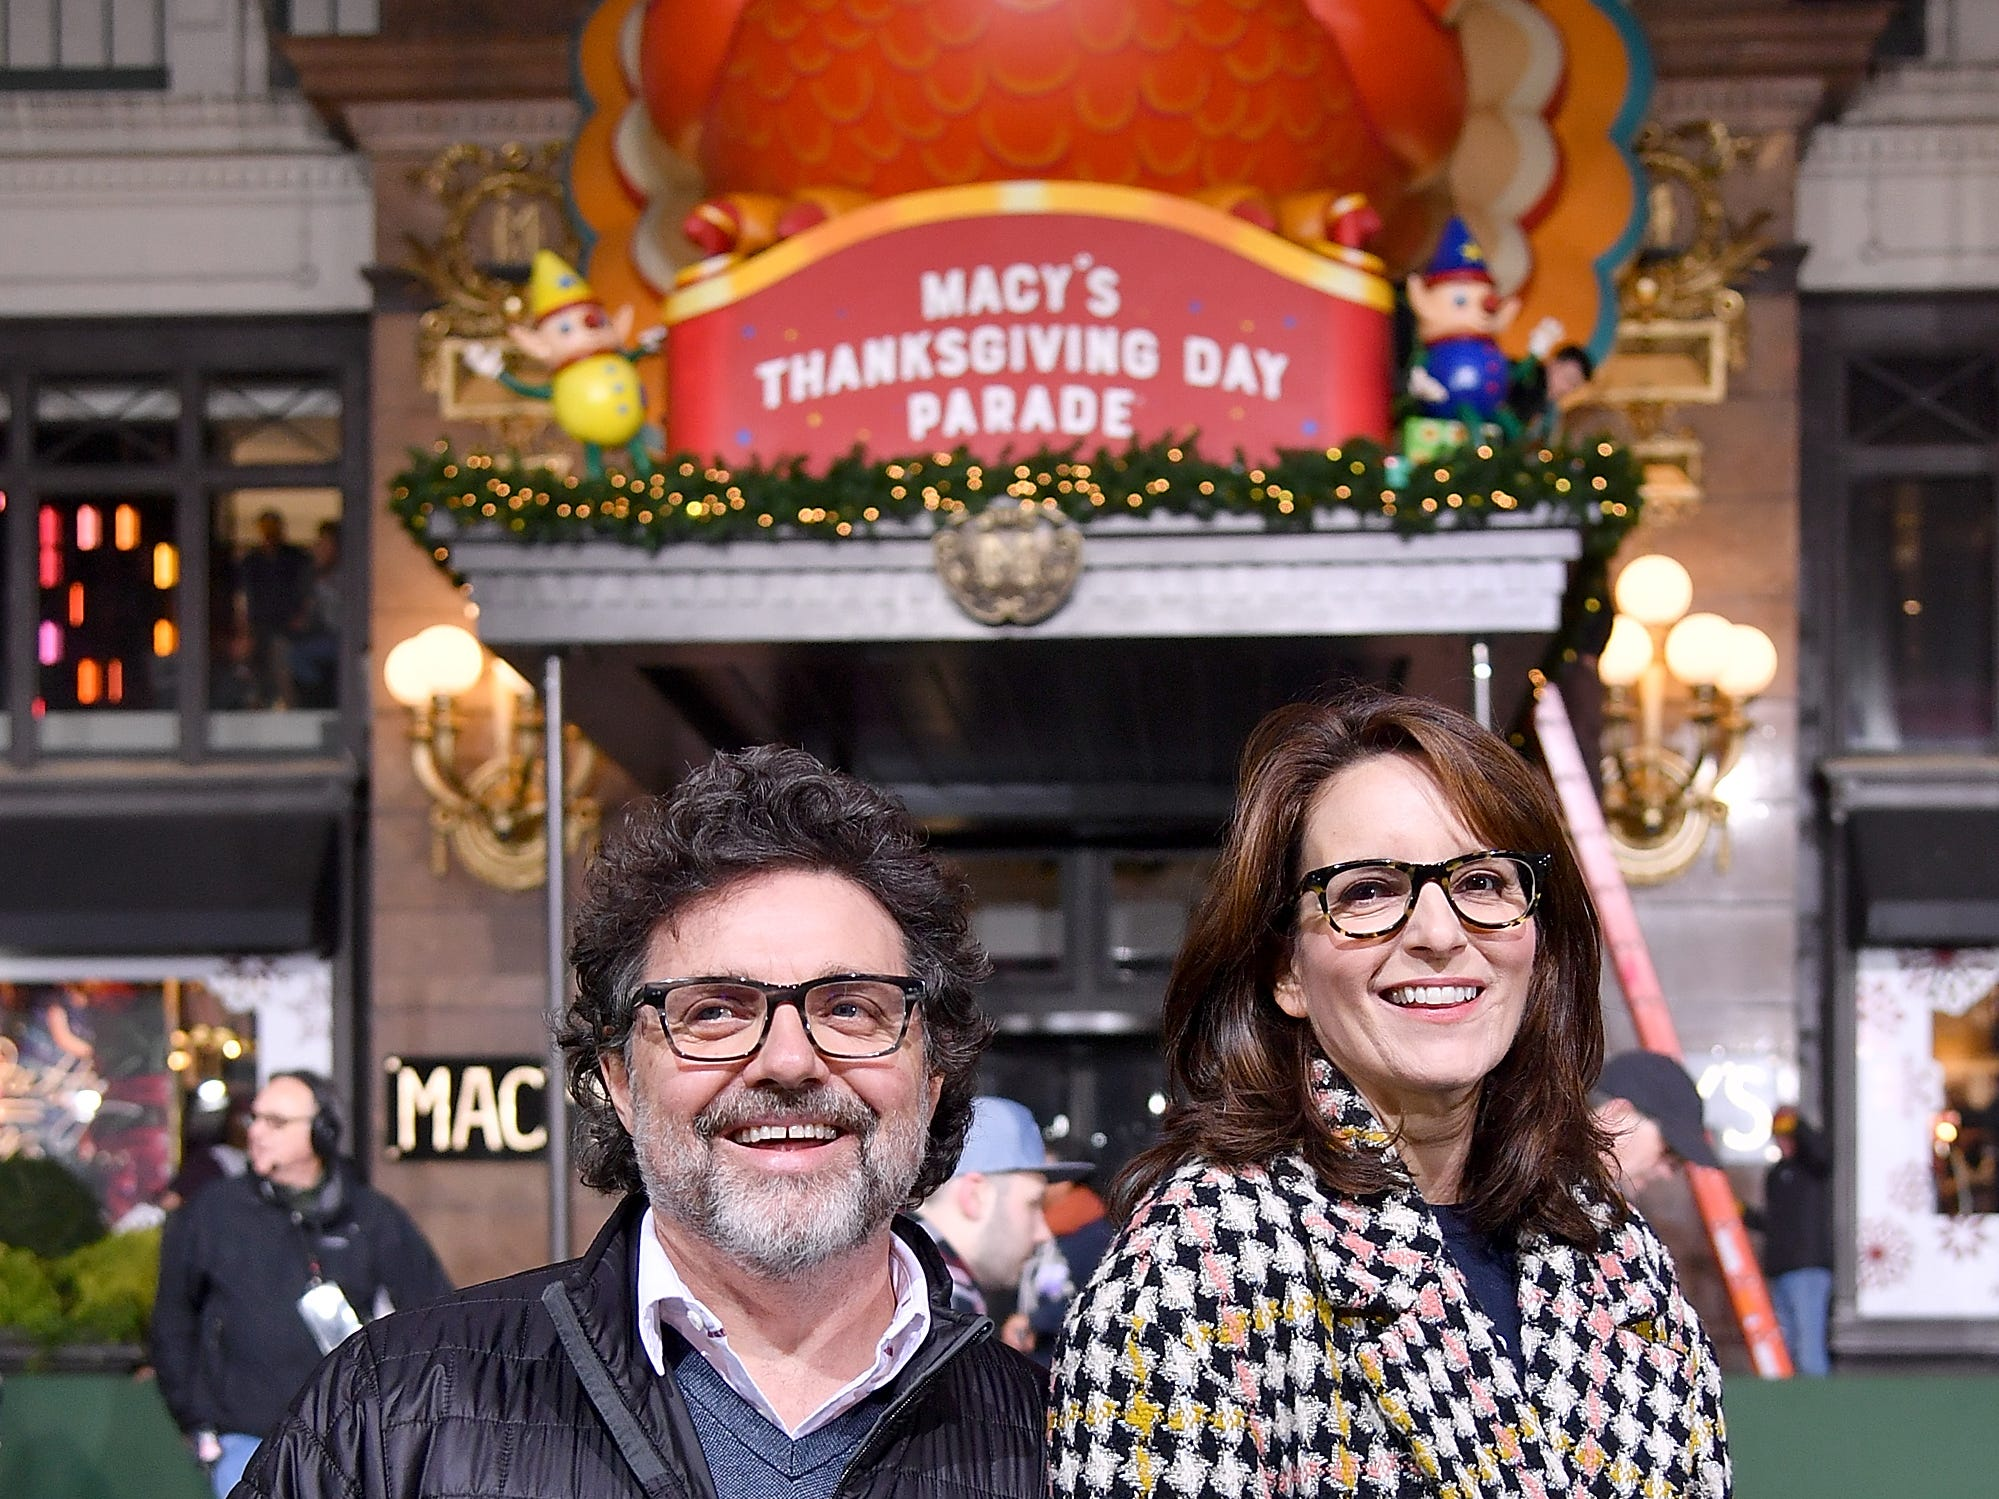 NEW YORK, NY - NOVEMBER 19:  'Mean Girls' Broadway Play Composer Jeff Richmond and playwright Tina Fey attend the 92nd Annual Macy's Thanksgiving Day Parade rehearsals day one on November 19, 2018 in New York City.  (Photo by Michael Loccisano/Getty Images)